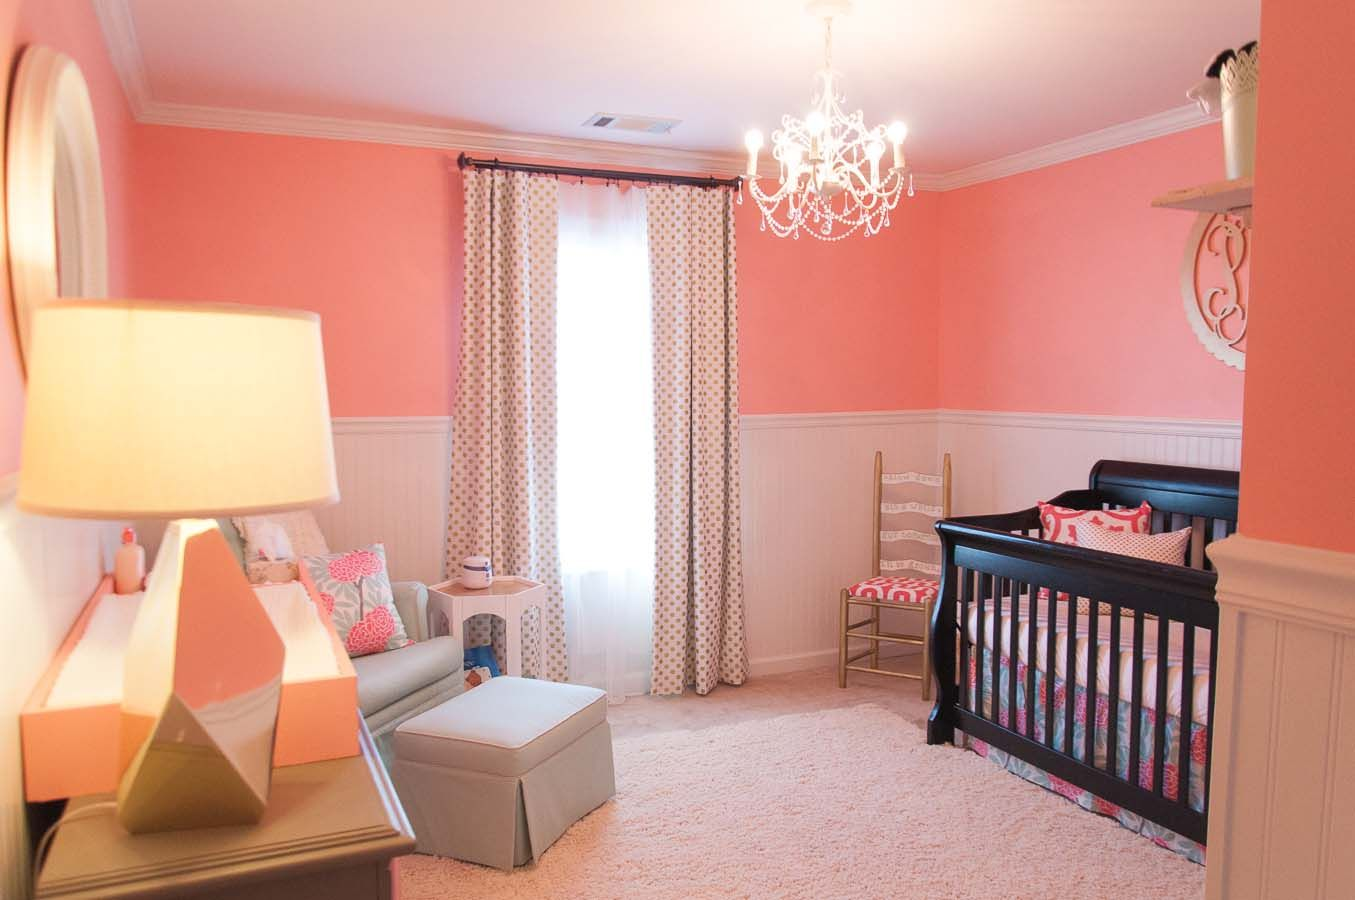 Harlow S Room Accent Wall Sherwin Williams Youthful Coral